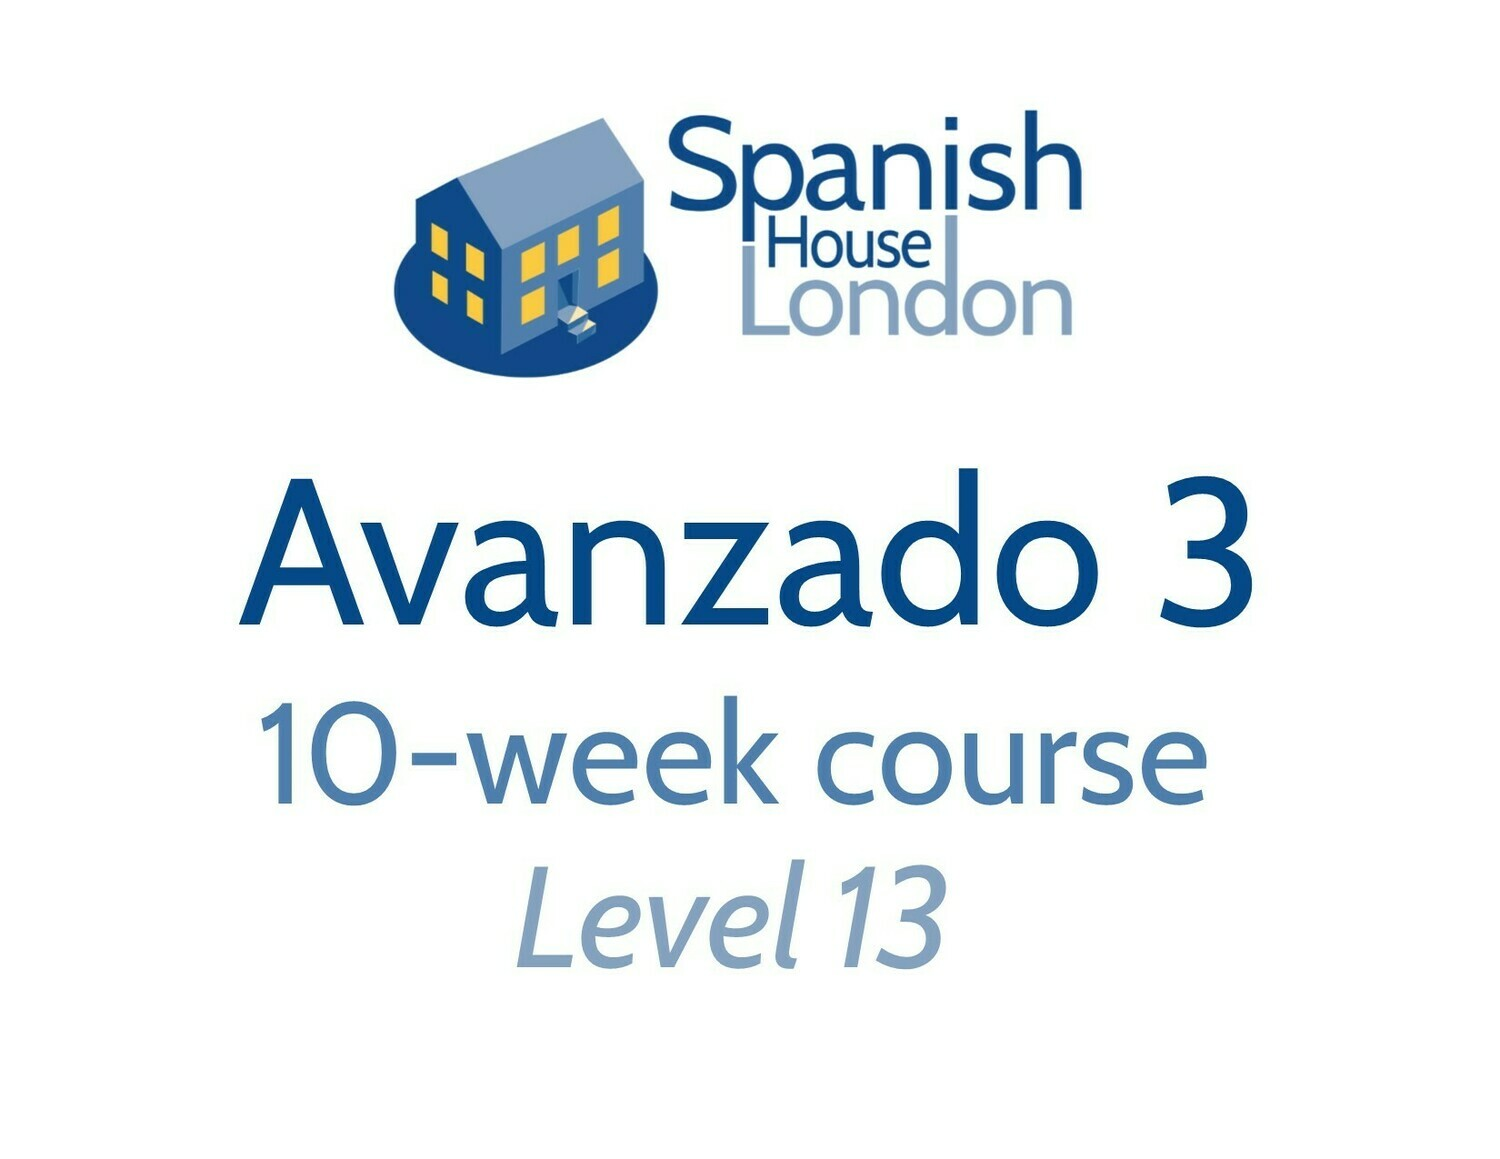 Avanzado 3 Course starting on 9th February at 6pm